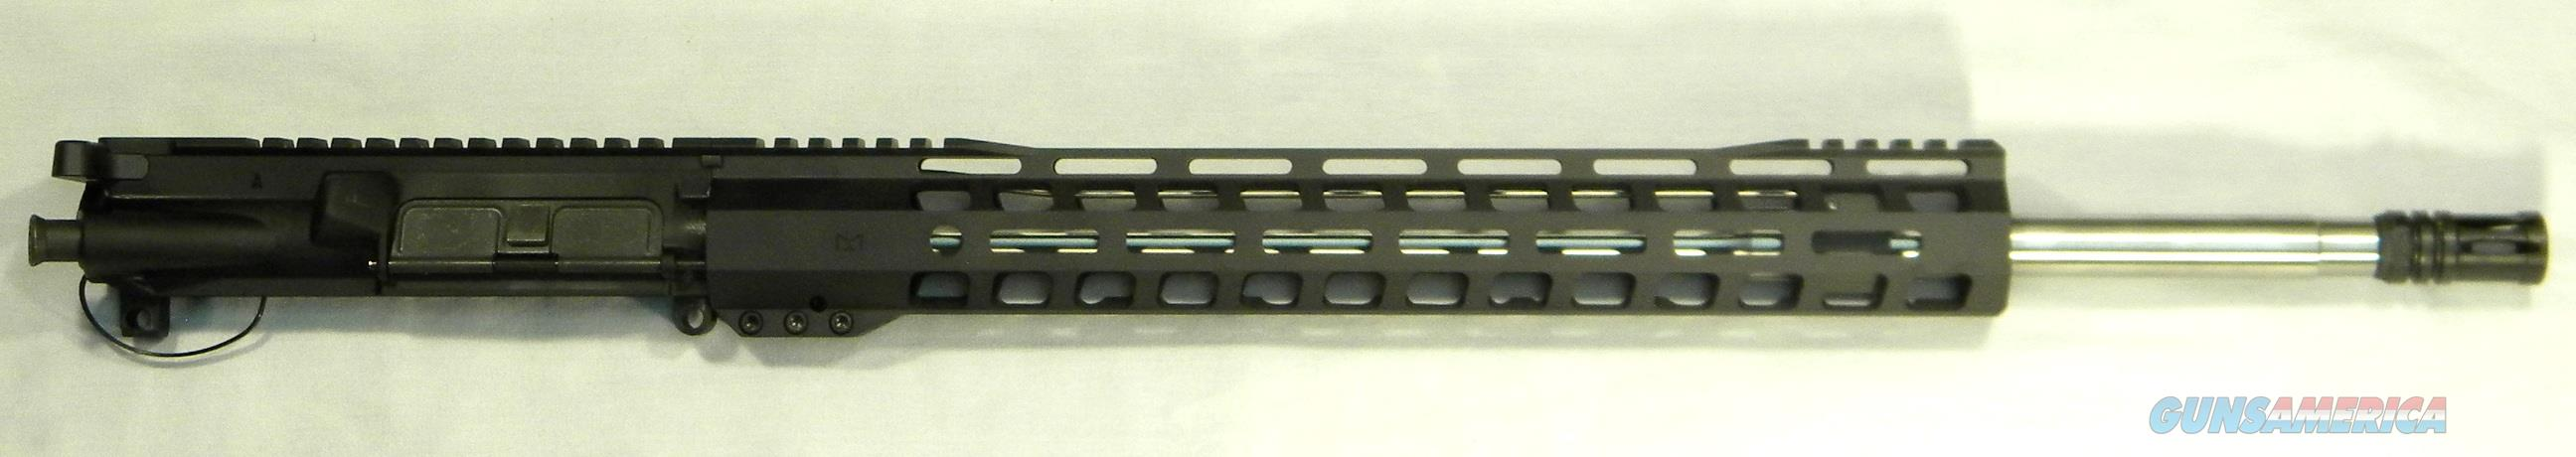 """.224 Valkyrie Complete Upper For AR-15, Stainless 20"""" Barrel w/ Free-Float Hand Guard  Non-Guns > Gun Parts > M16-AR15"""